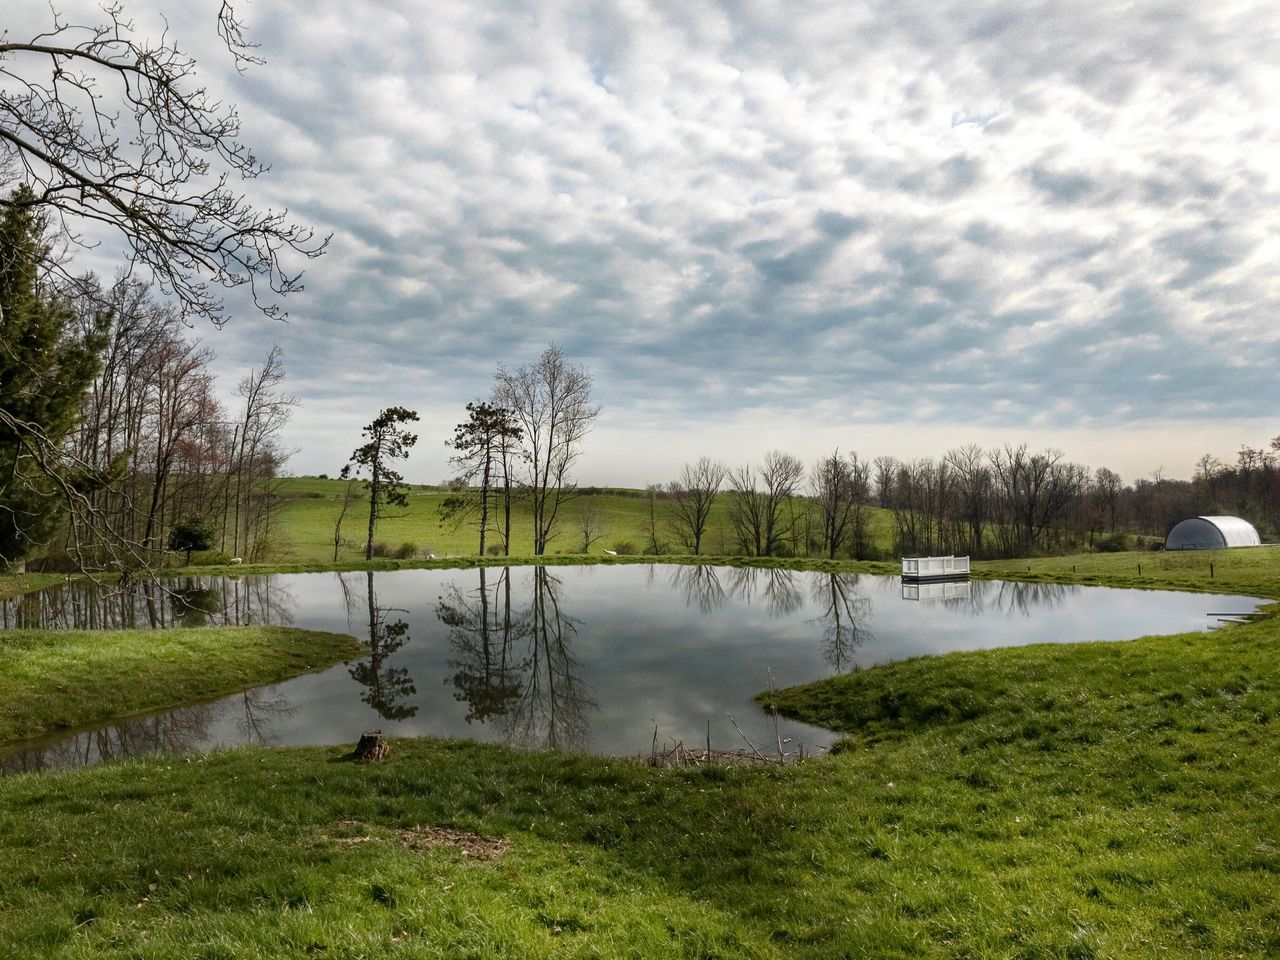 water, grass, lake, tranquility, reflection, nature, tranquil scene, tree, beauty in nature, cloud - sky, scenics, sky, no people, outdoors, green color, day, landscape, growth, bare tree